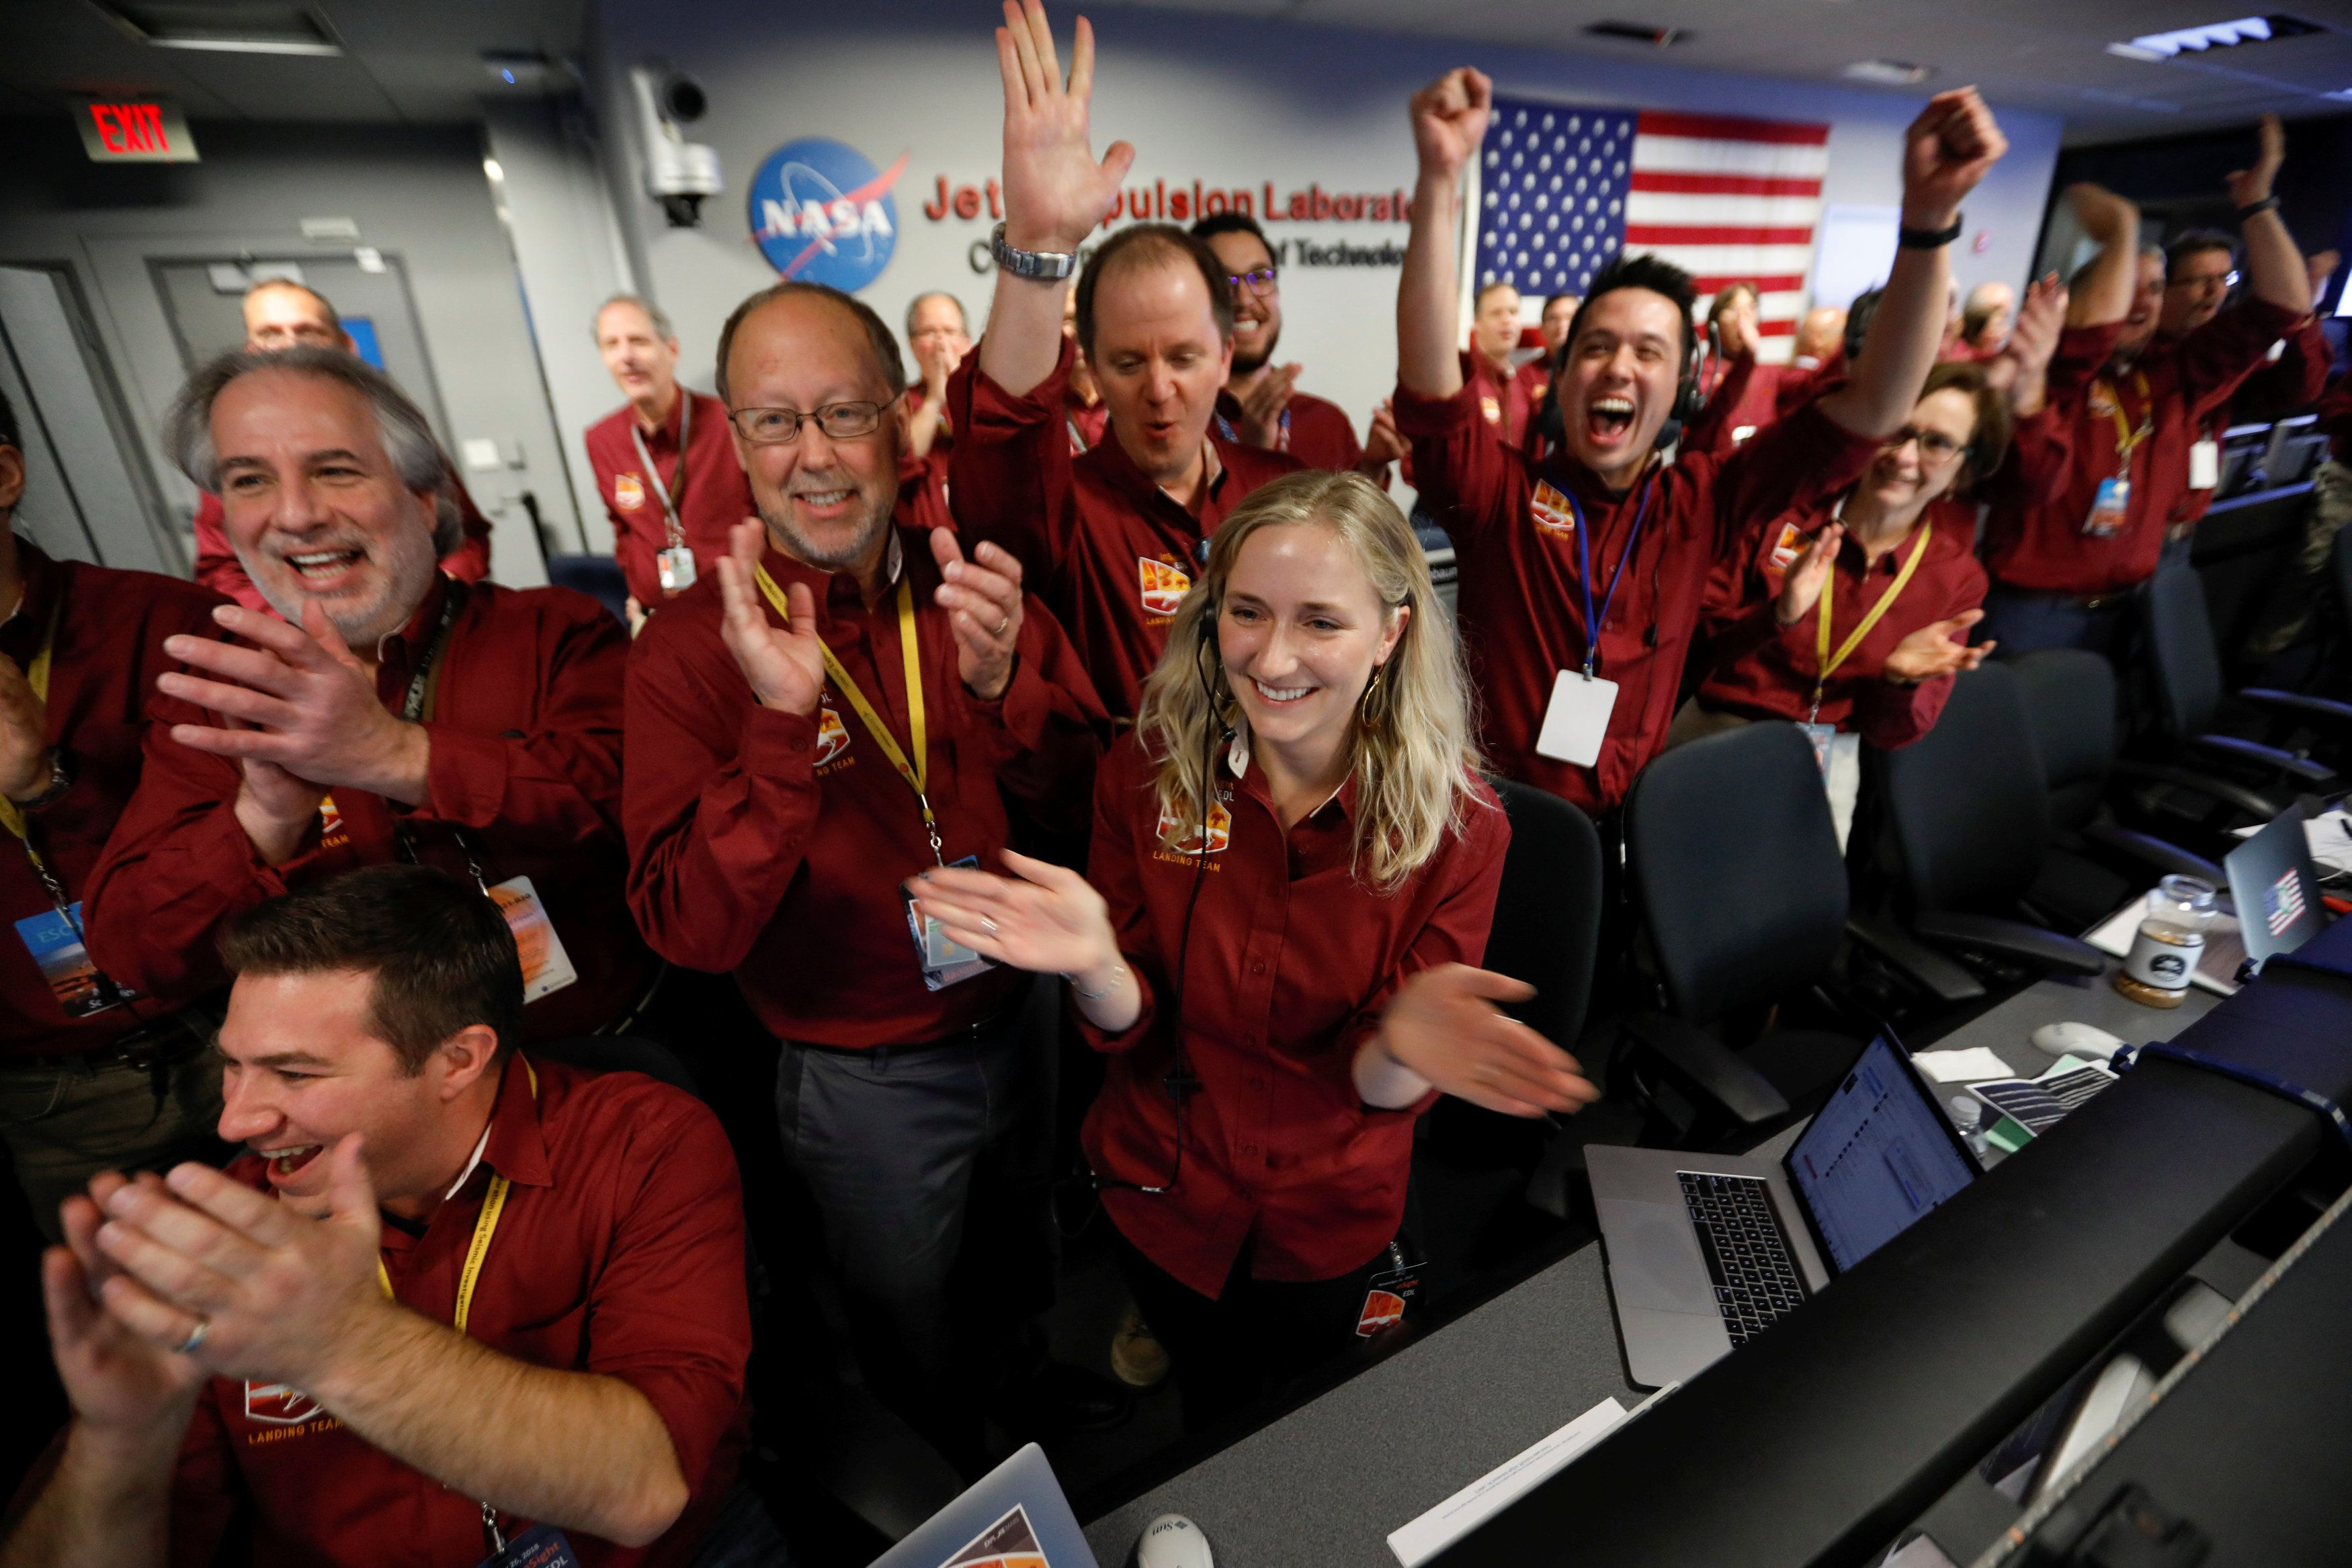 Reuters               Engineers at the Jet Propulsion Laboratory celebrate